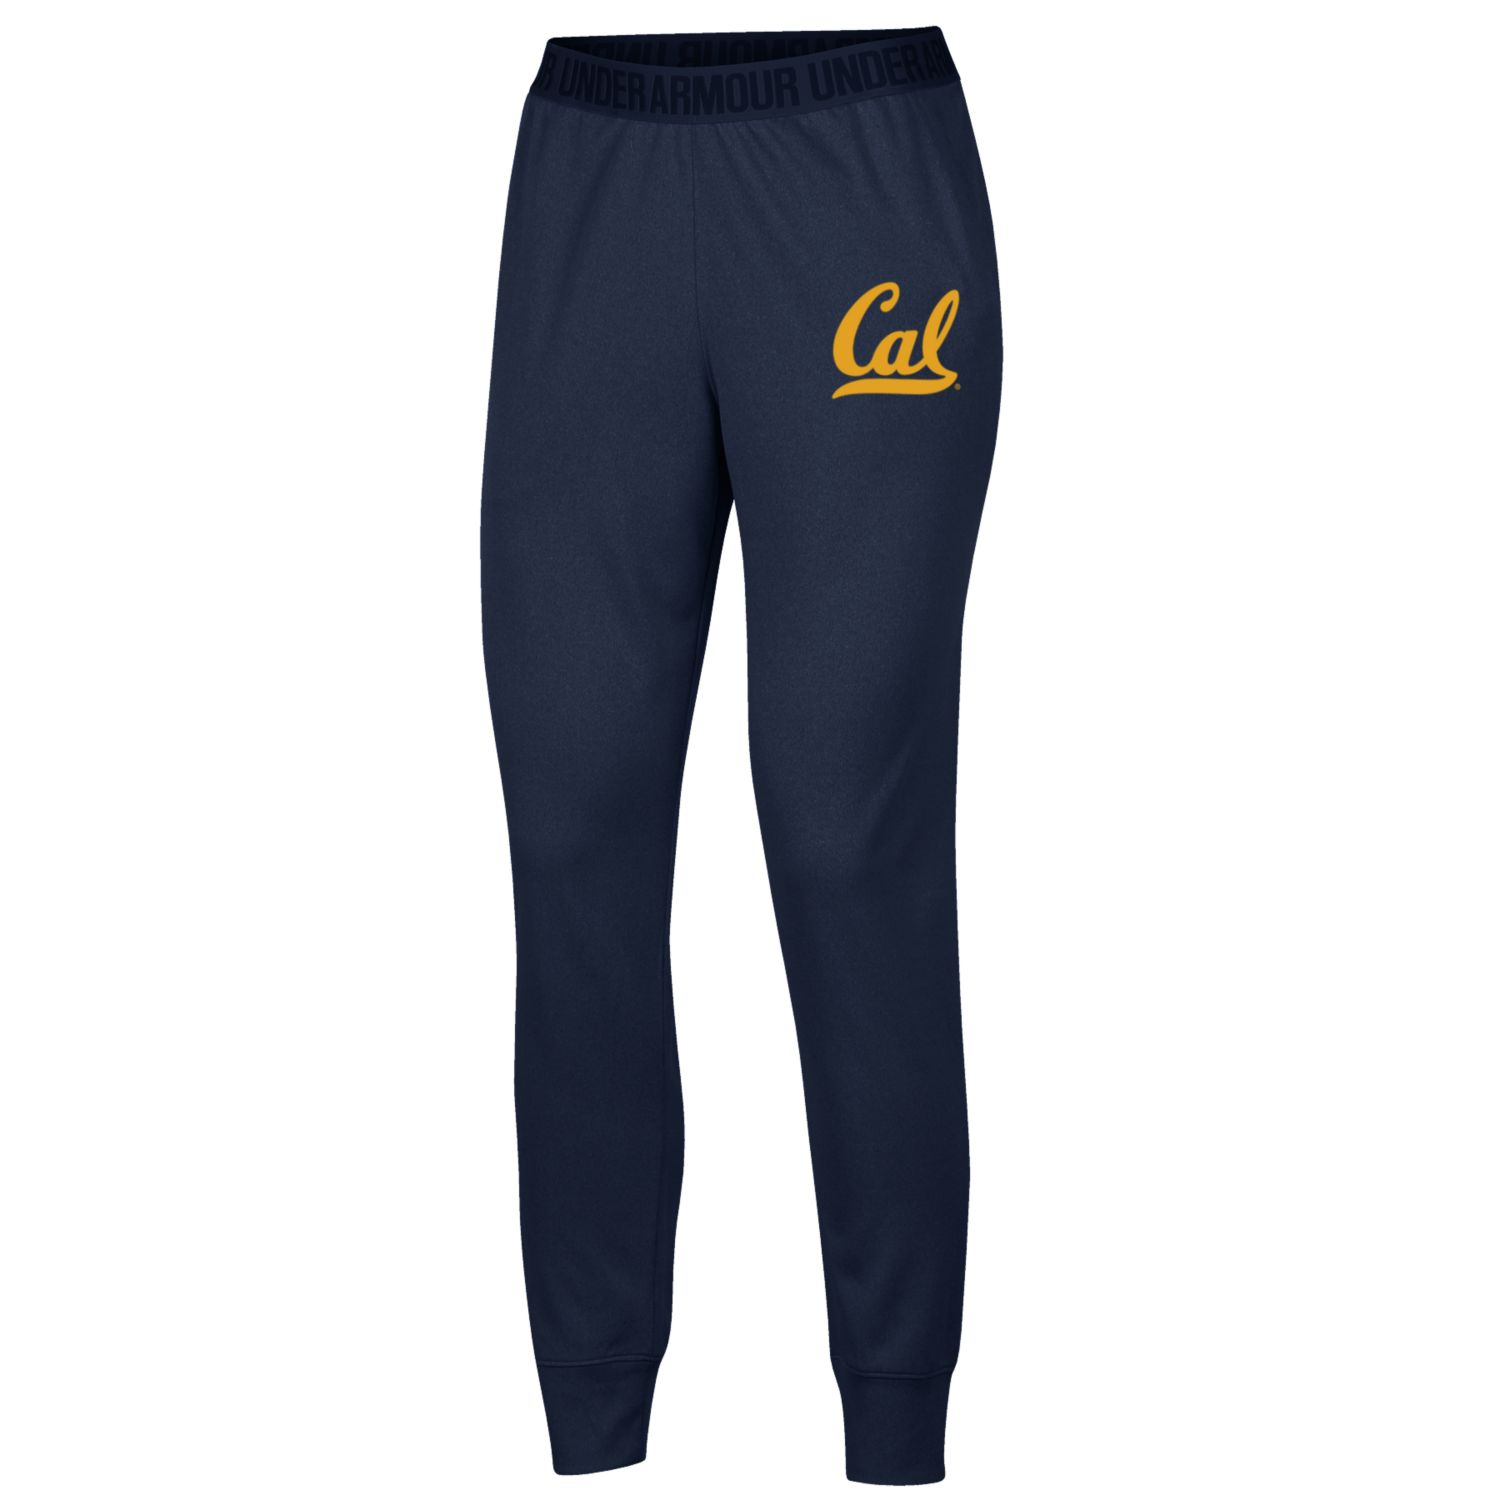 Women's Play Up Pant Under Armour